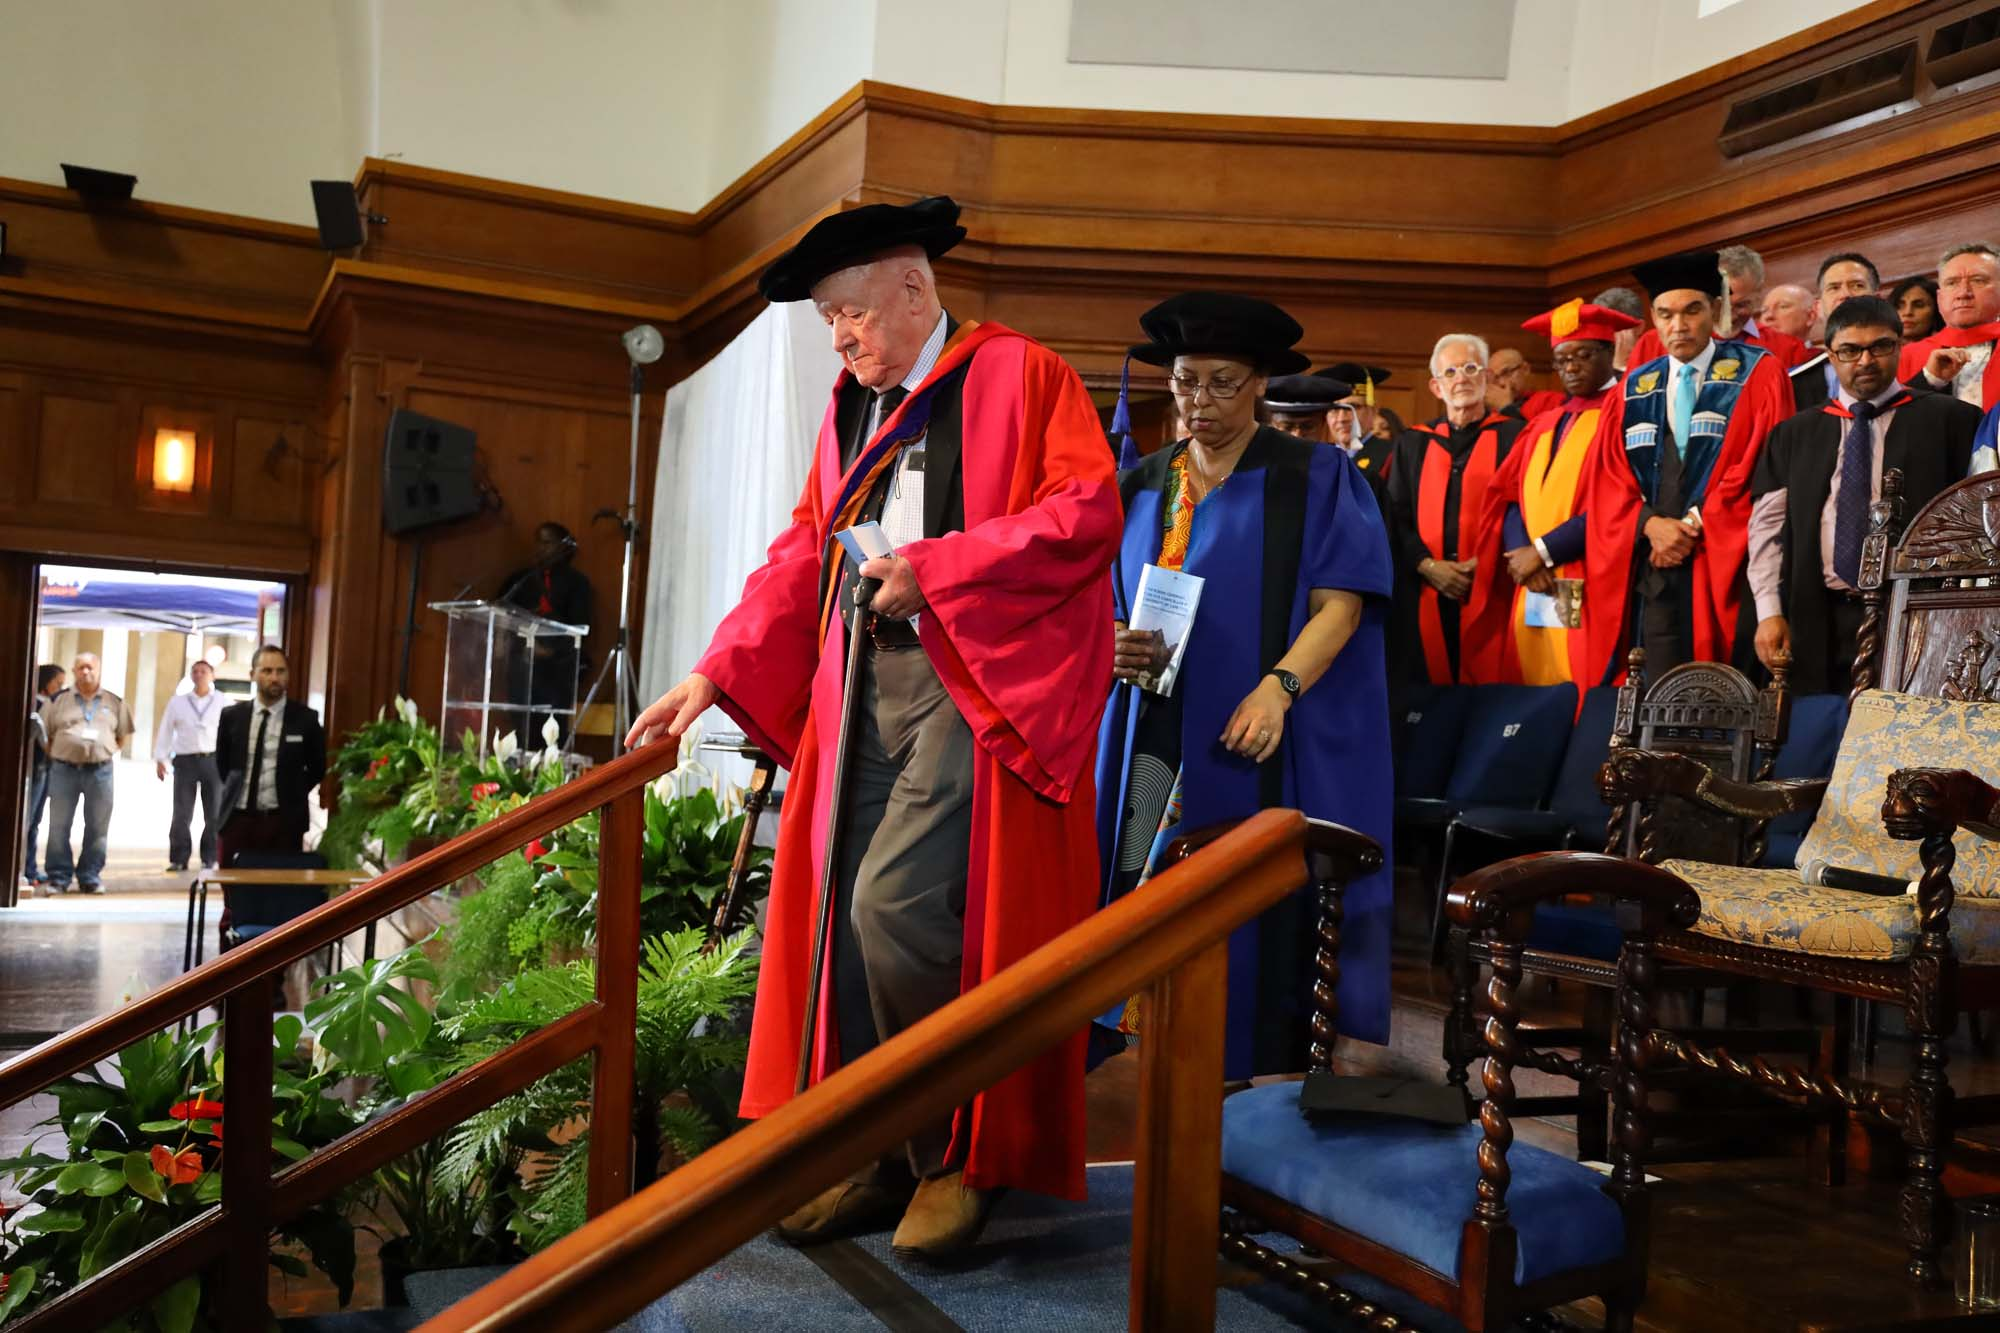 At the robing ceremony of Professor Mamokgethi Phakeng, the new vice-chancellor of the University of Cape Town, in December 2018.